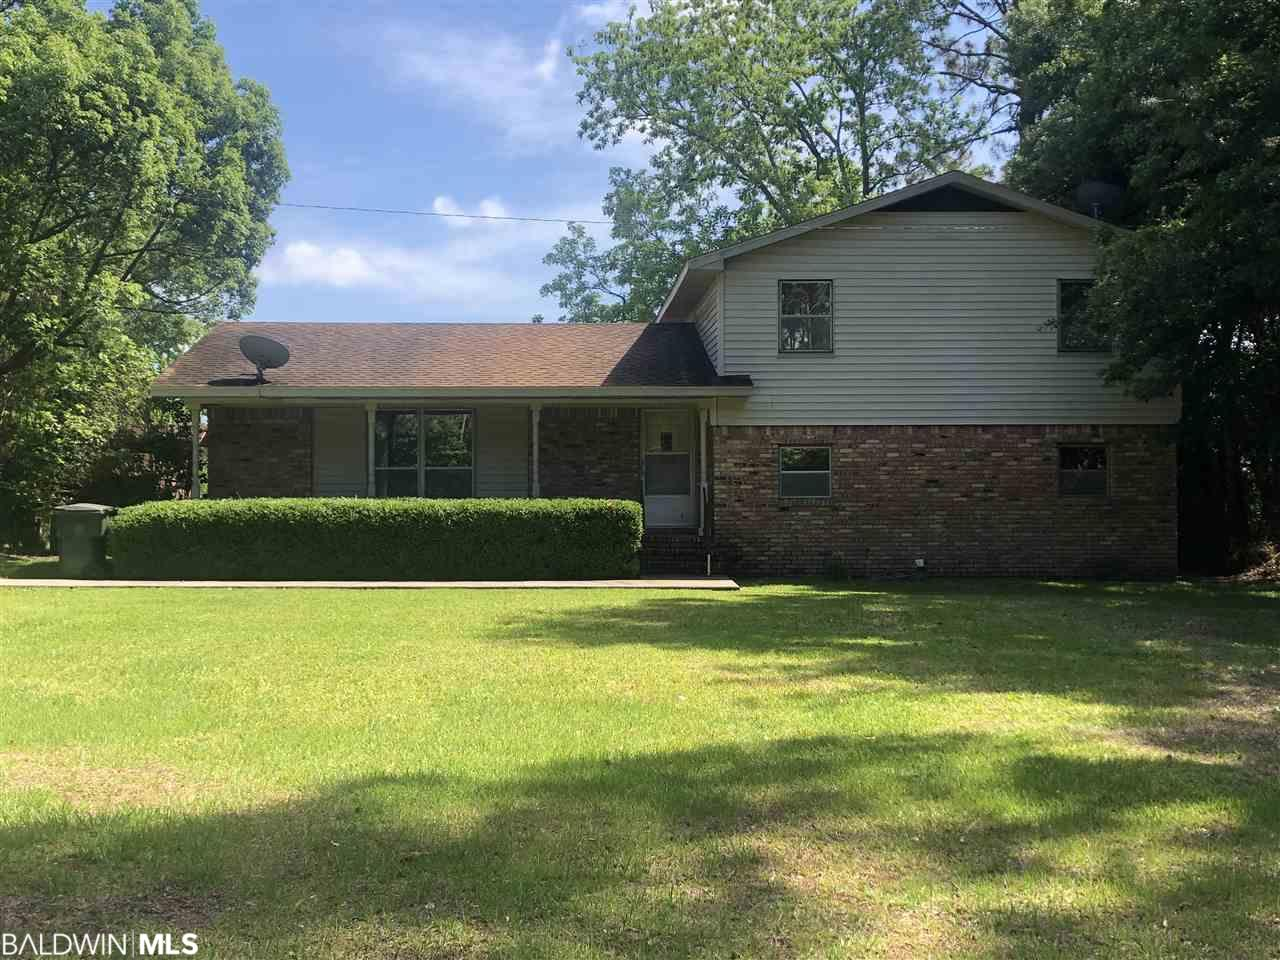 """This house sits on almost an acre of land and is 1/2 mile from HWY 59. Lower level could be used for a mother-in-law suite or multi-generational area. House is sold """"as sold where is""""."""